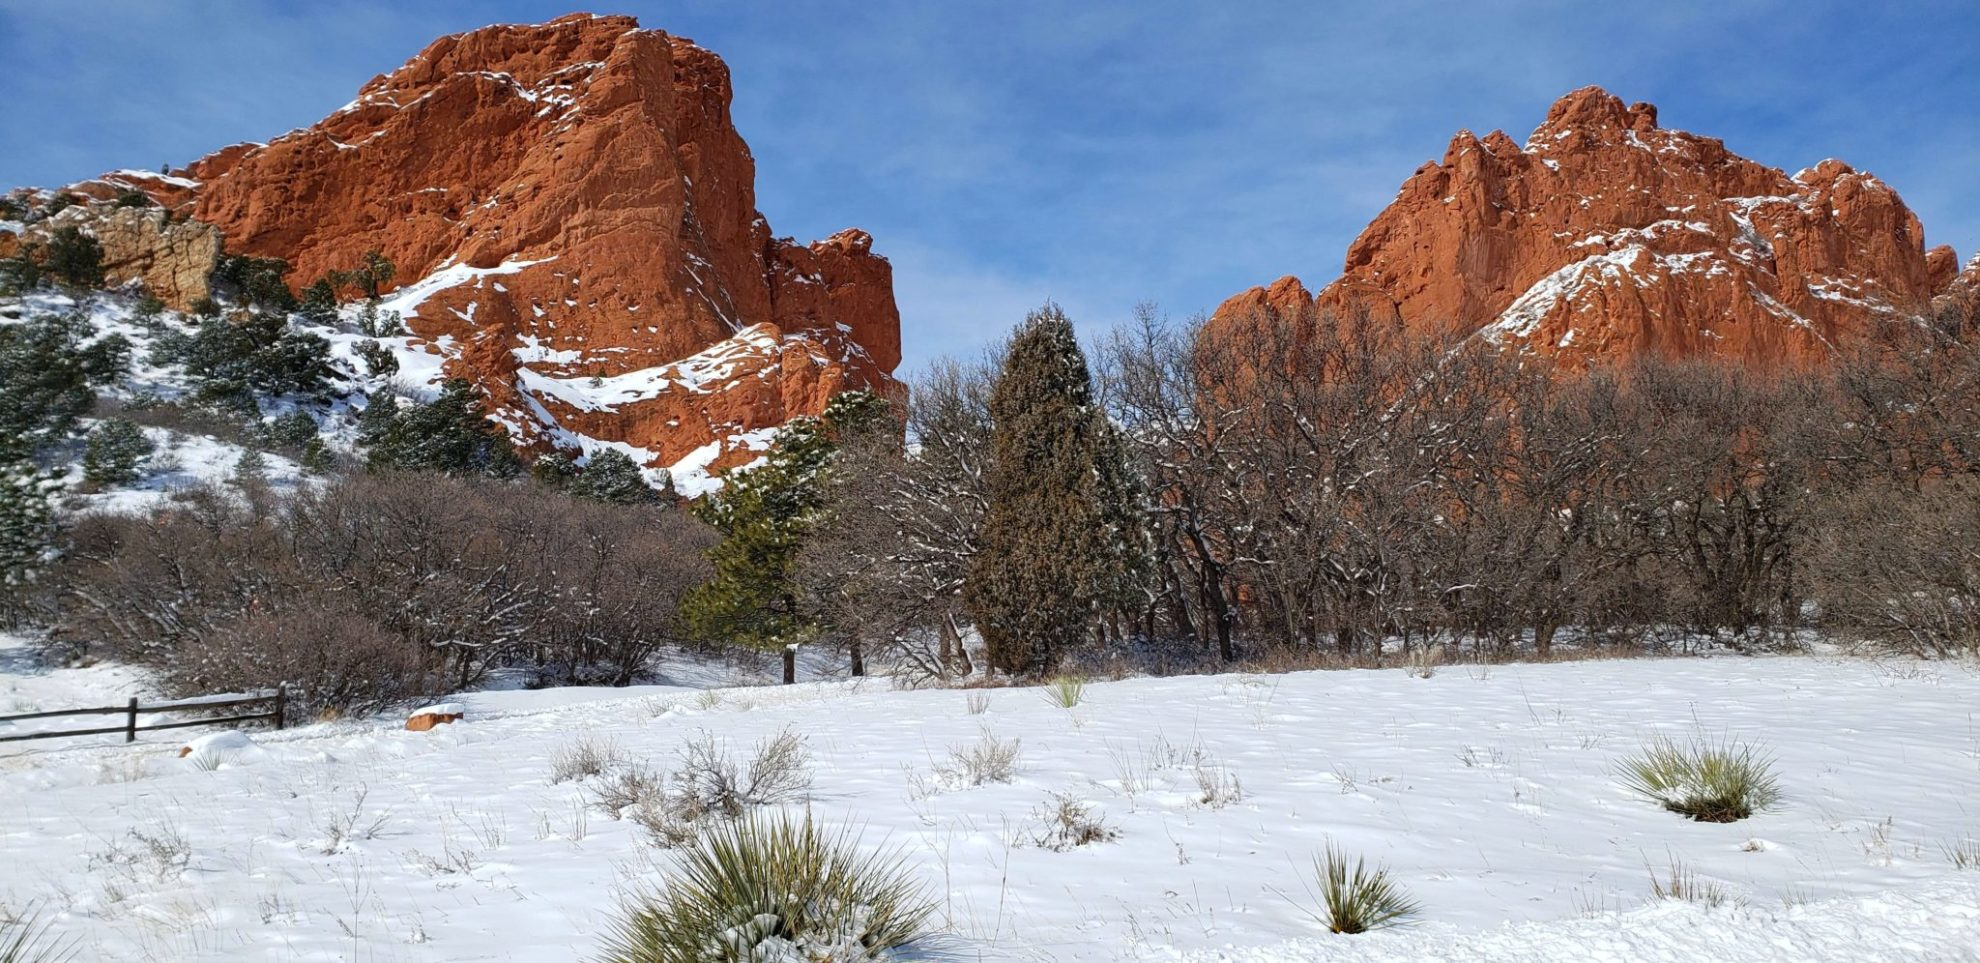 The red sandstone formations in stark contrast to the snow